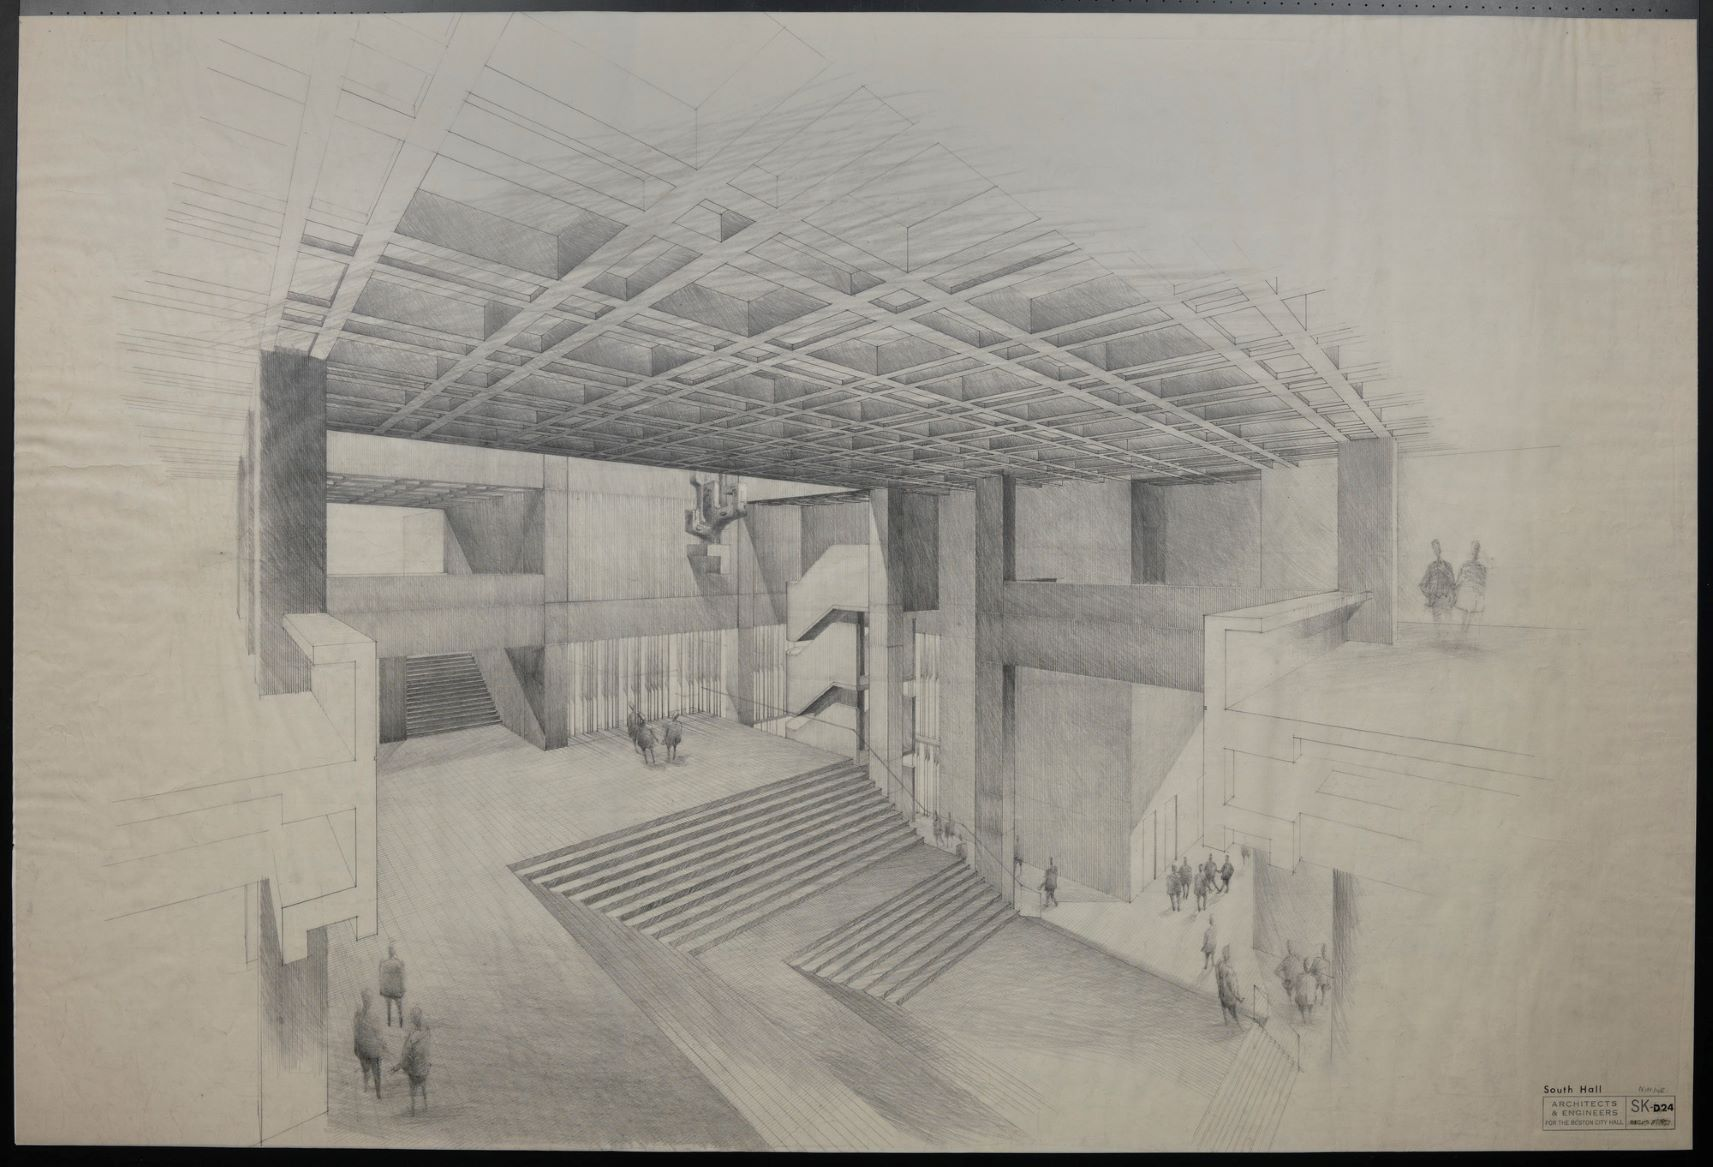 Boston City Hall architectural drawing